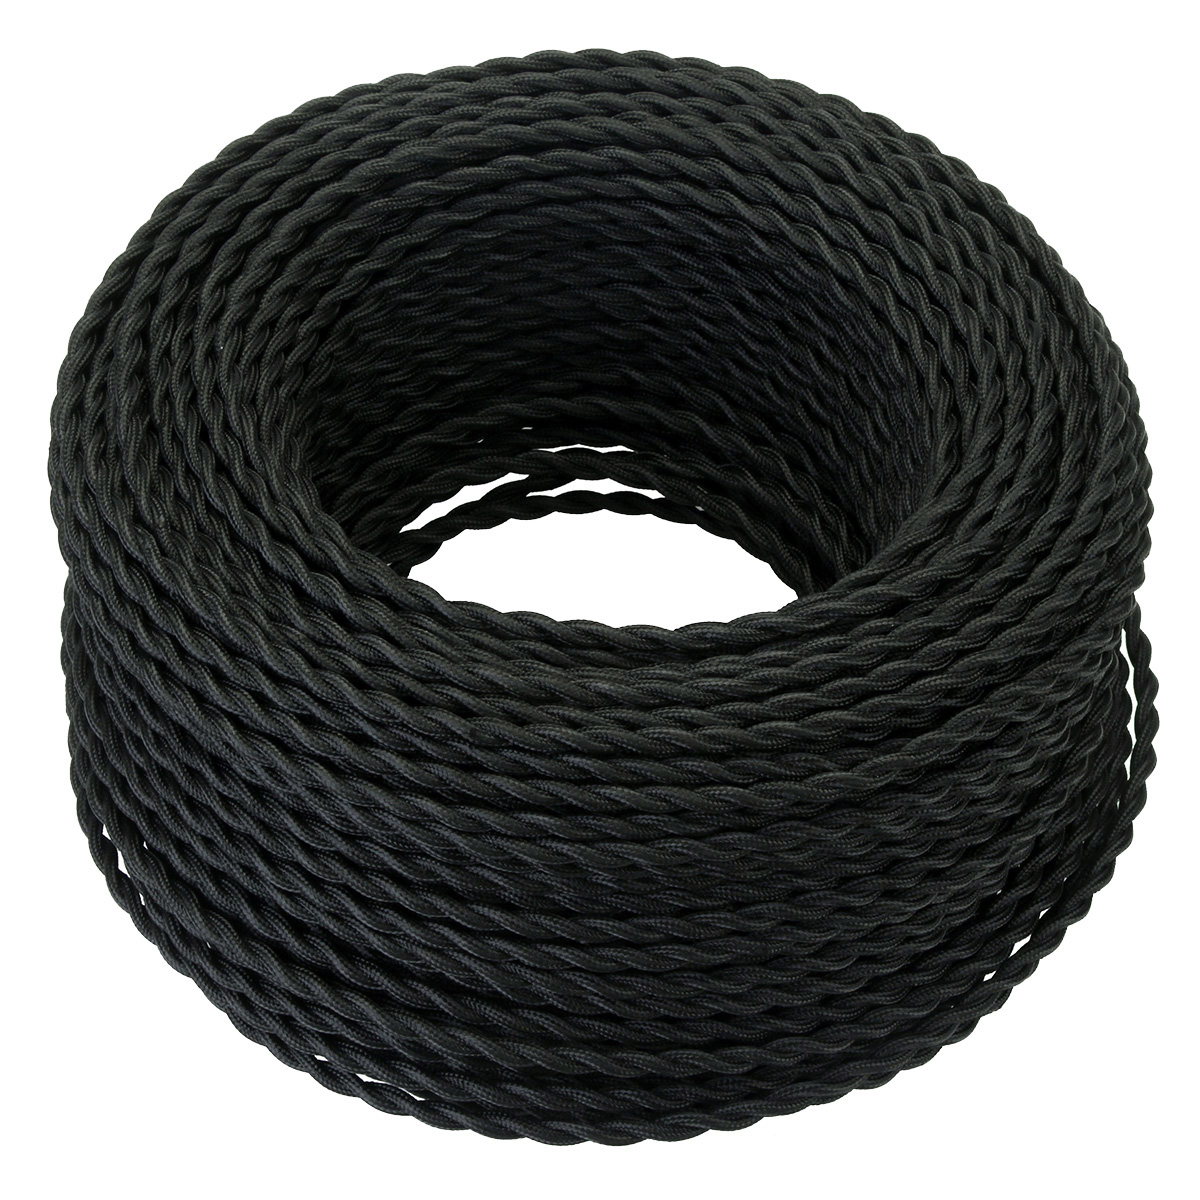 Black 5/10/20 Meters <font><b>2</b></font> <font><b>Core</b></font> Electrical Rope <font><b>Wire</b></font> Vintage Antique Braided Twisted Fabric Lighting Cable Woven Silk Flexible Cord image